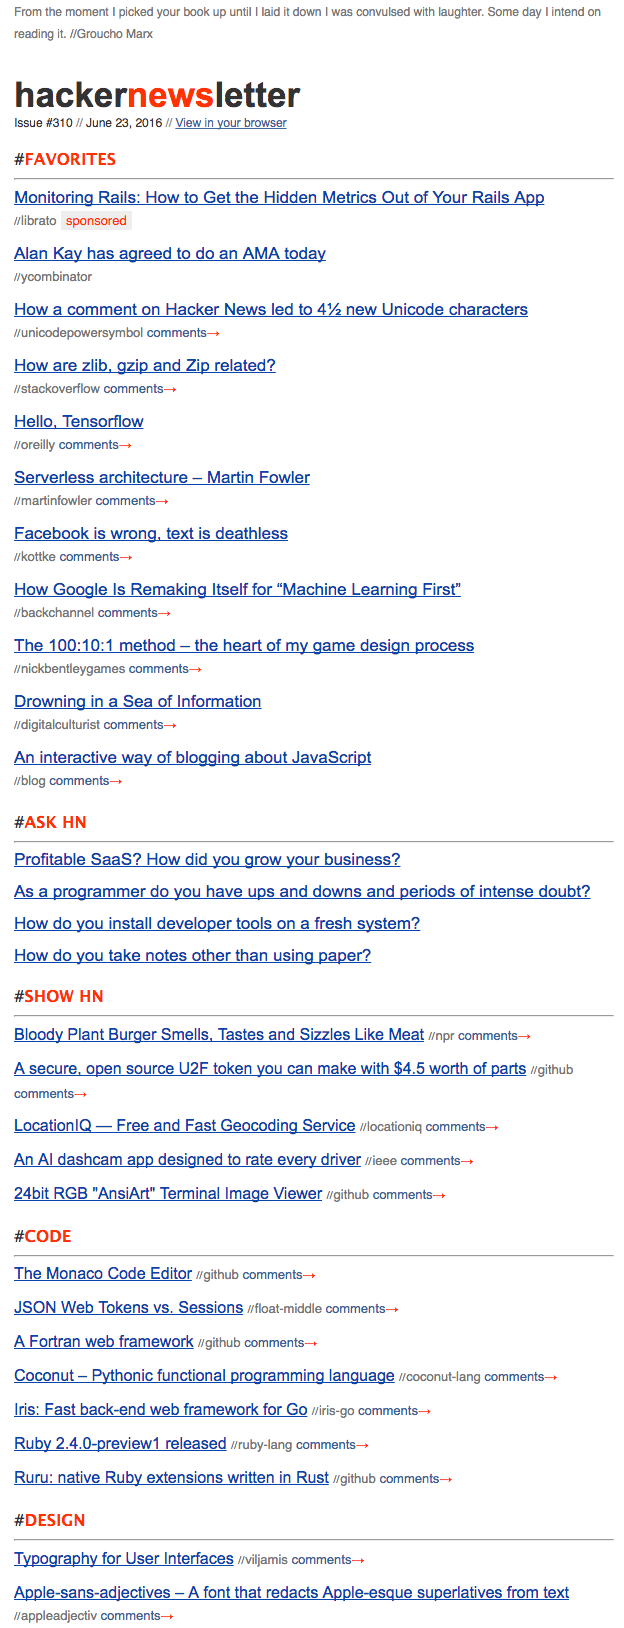 hacker-newsletter-example.png